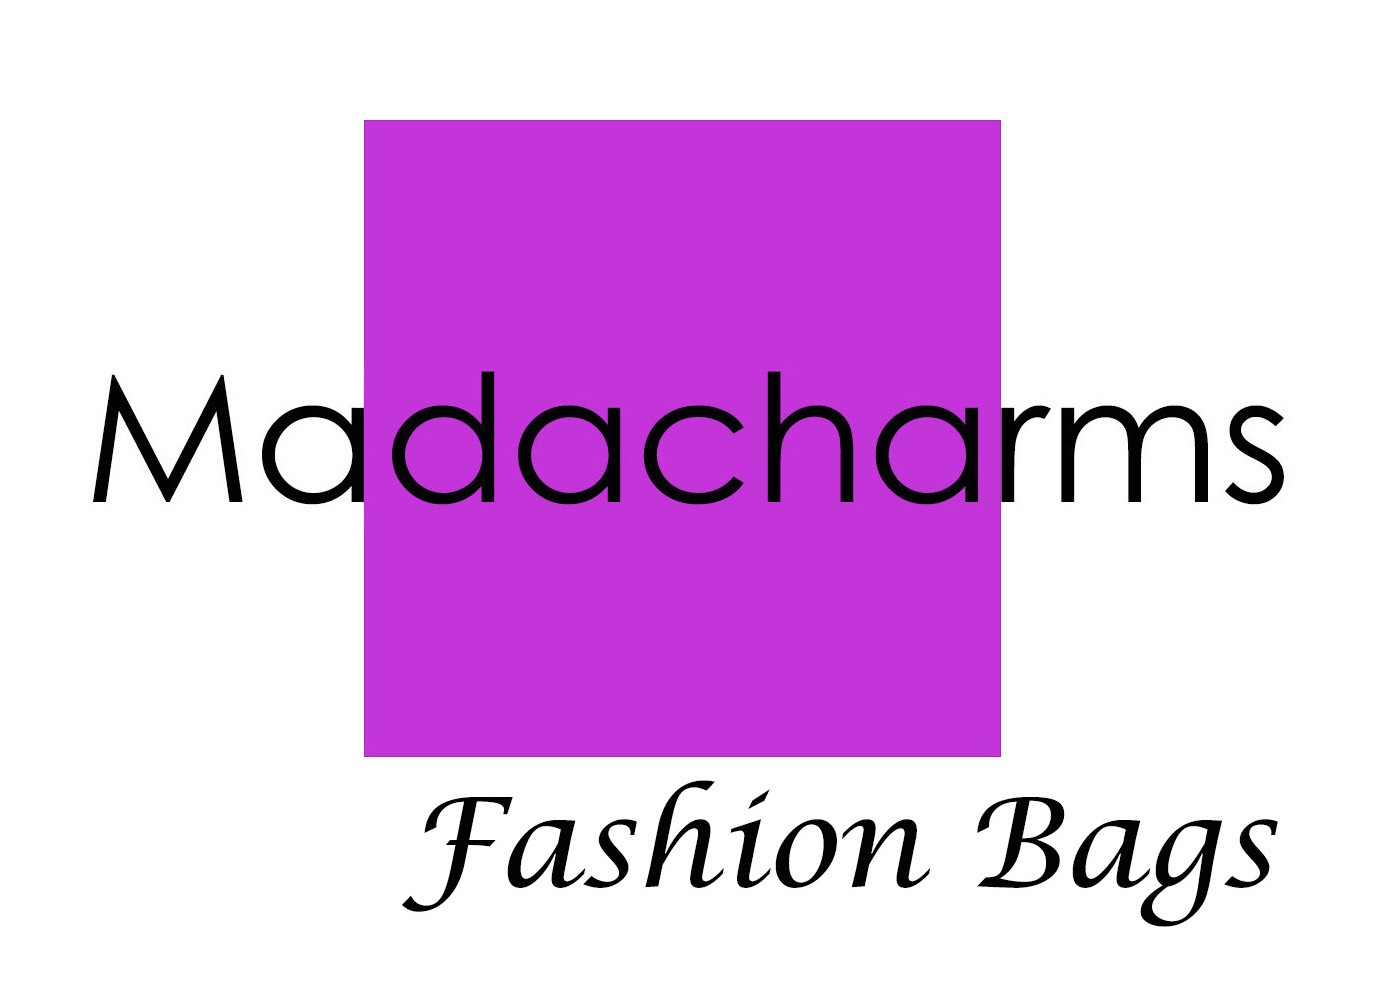 Madacharms Fashion Bags